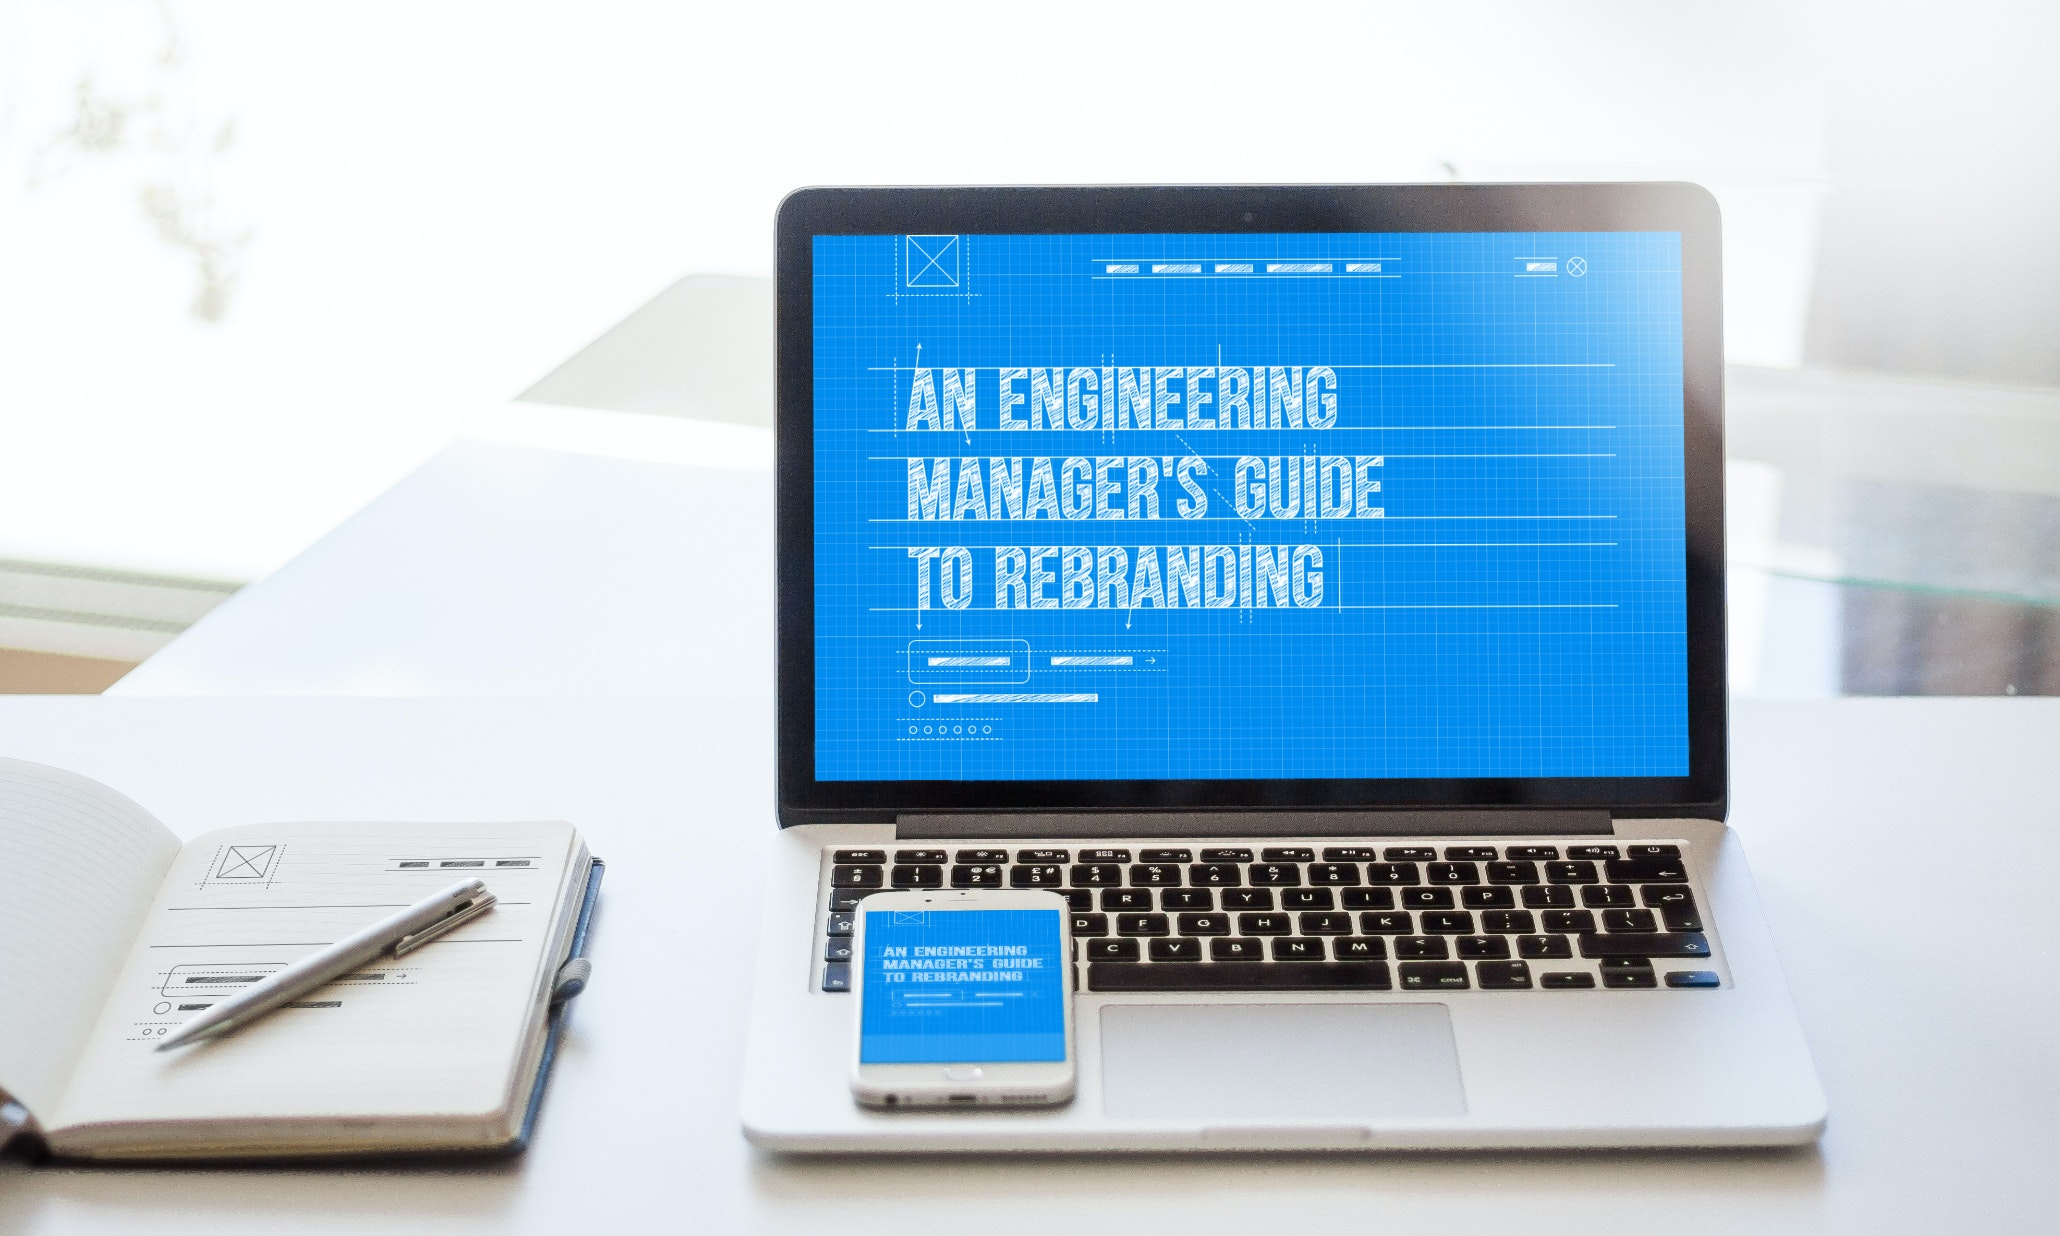 An engineering manager's guide to rebranding